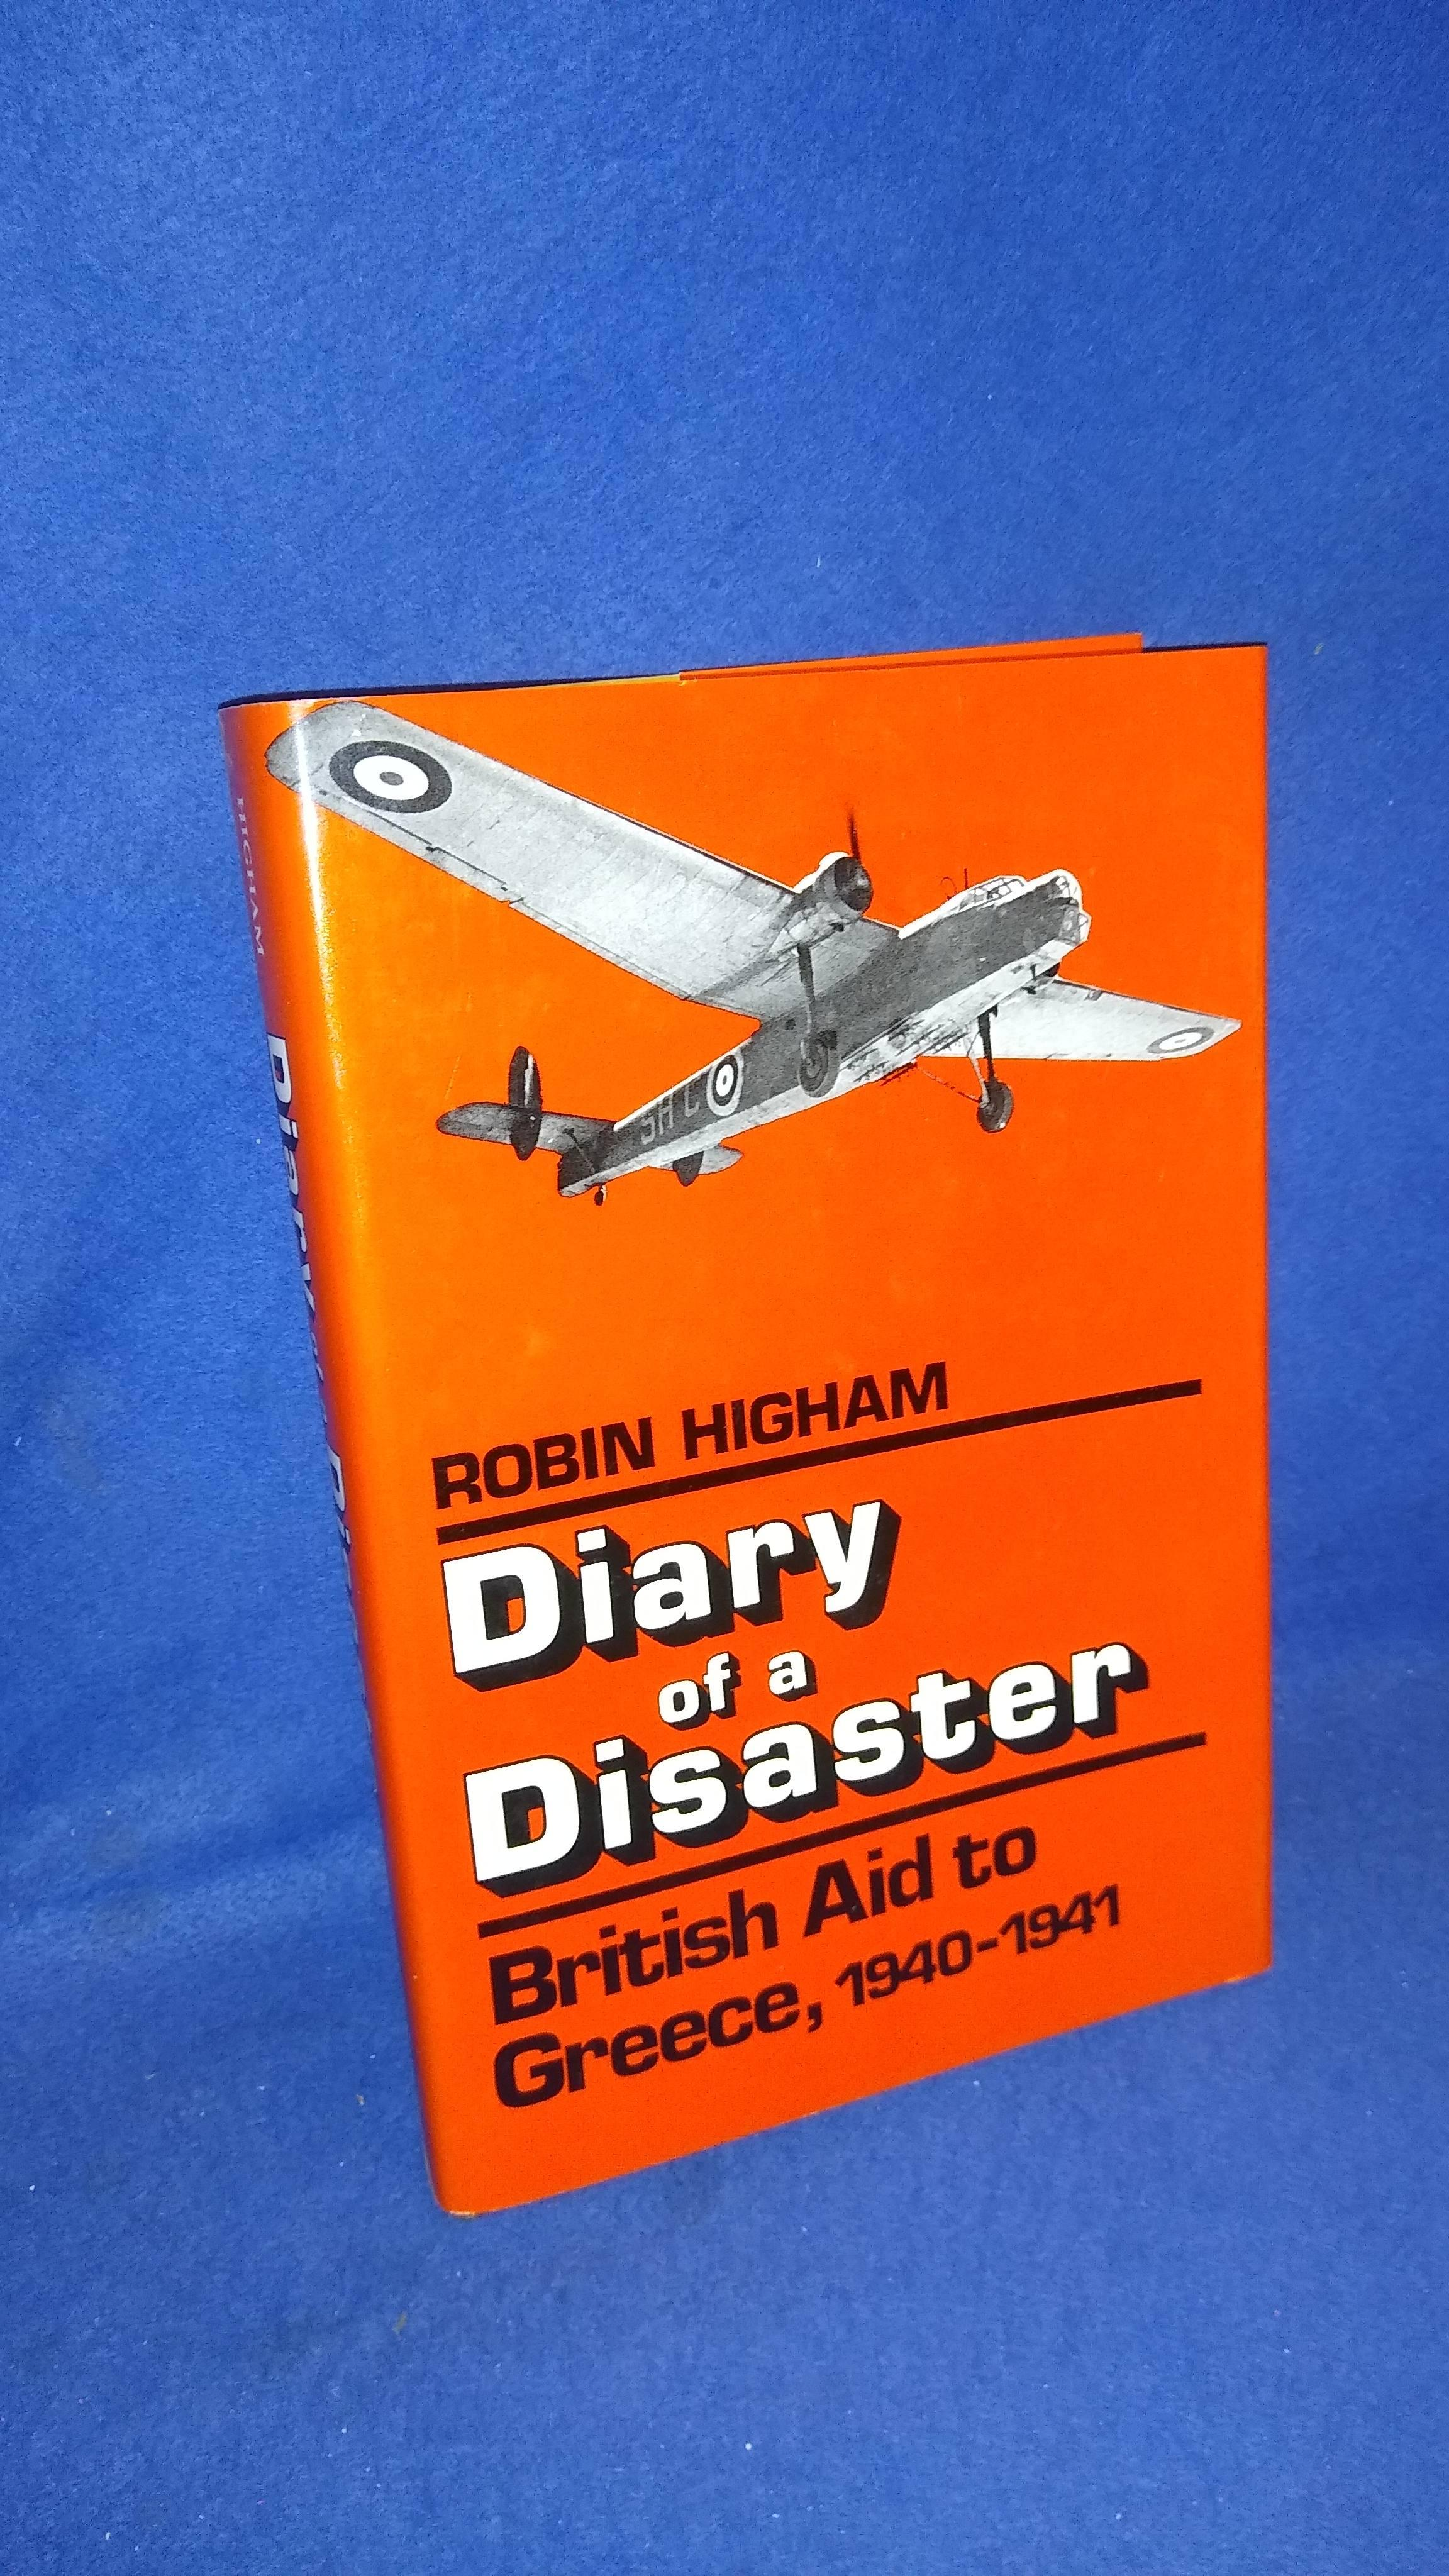 Diary of a Disaster: British Aid to Greece, 1940-1941.